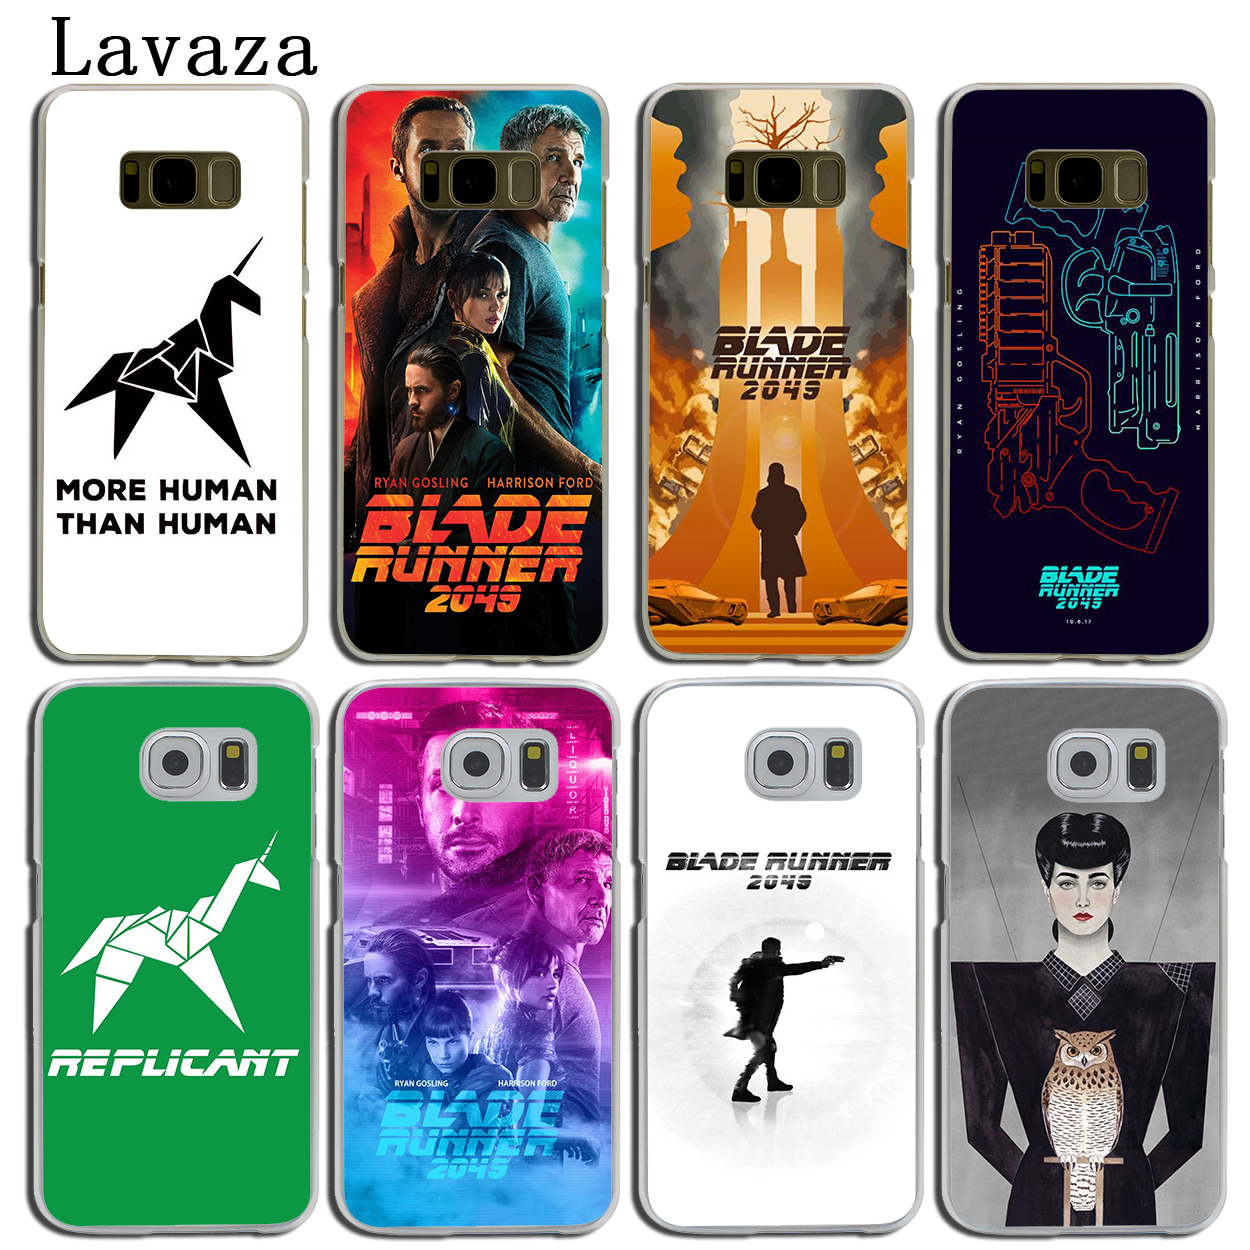 Lavaza Blade Runner 2049 film <font><b>Phone</b></font> Shell <font><b>Case</b></font> for <font><b>Samsung</b></font> Galaxy S20 Ultra S10 Lite S10E S6 <font><b>S7</b></font> Edge S8 S9 Plus A51 A71 A81 A91 image